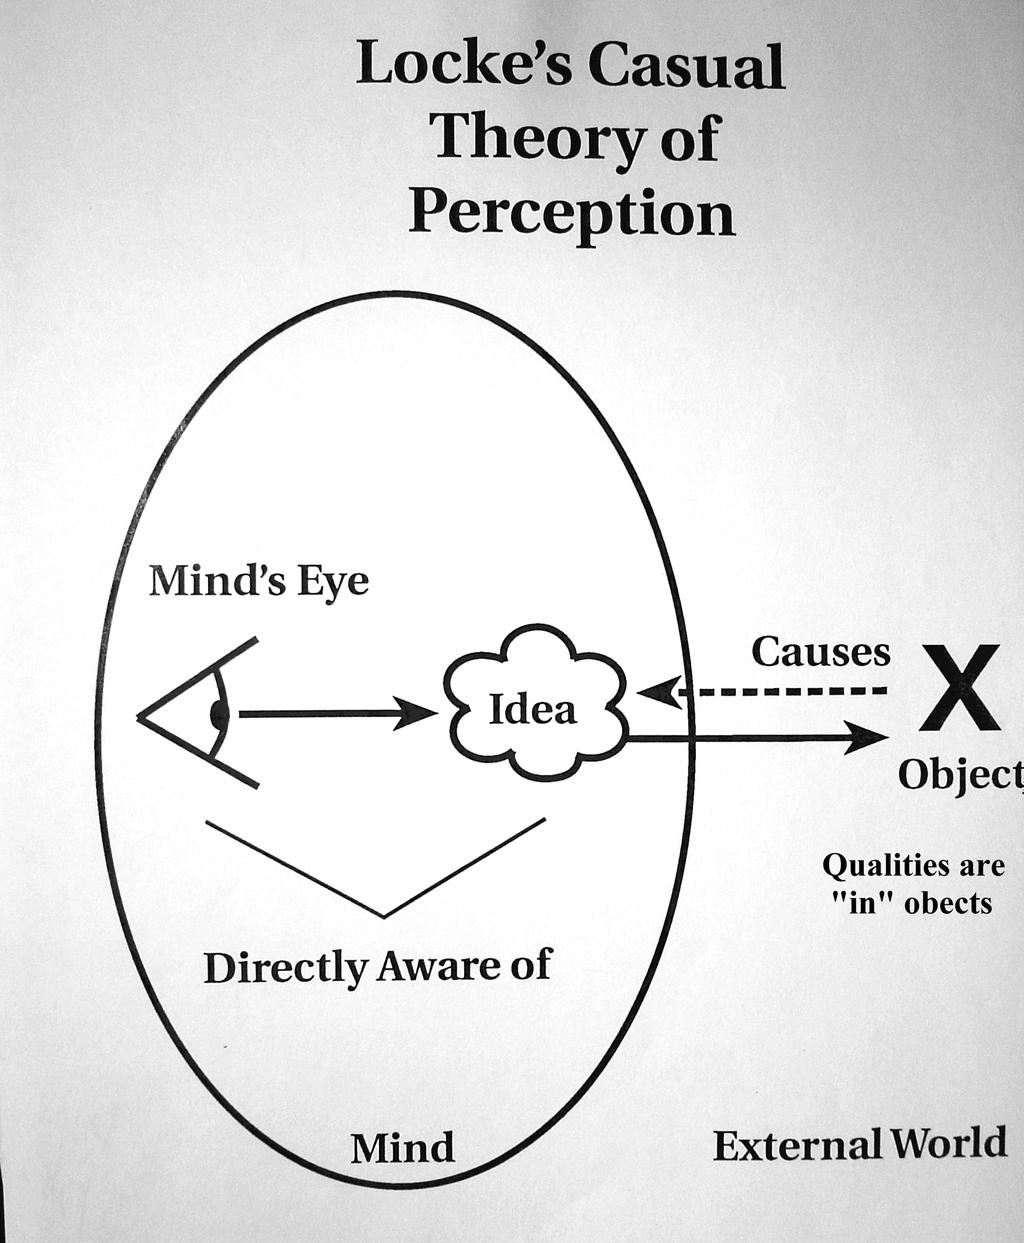 Locke s Causal Theory of Perception: We directly perceive only ideas that exist in our